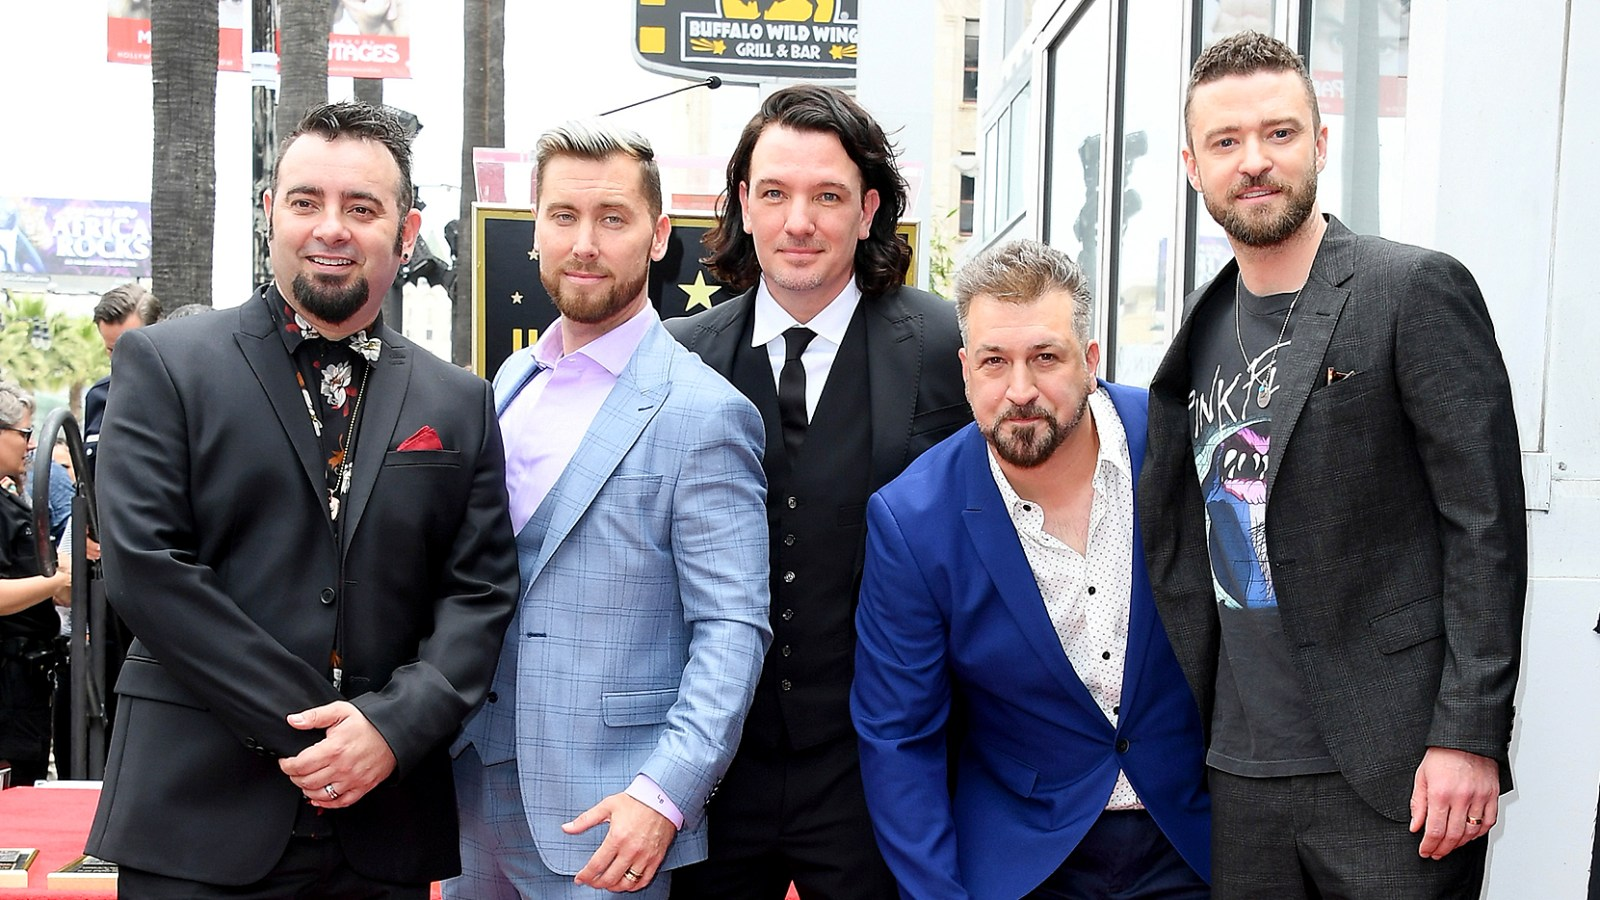 Nsync Reunites For Hollywood Walk Of Fame Star Ceremony